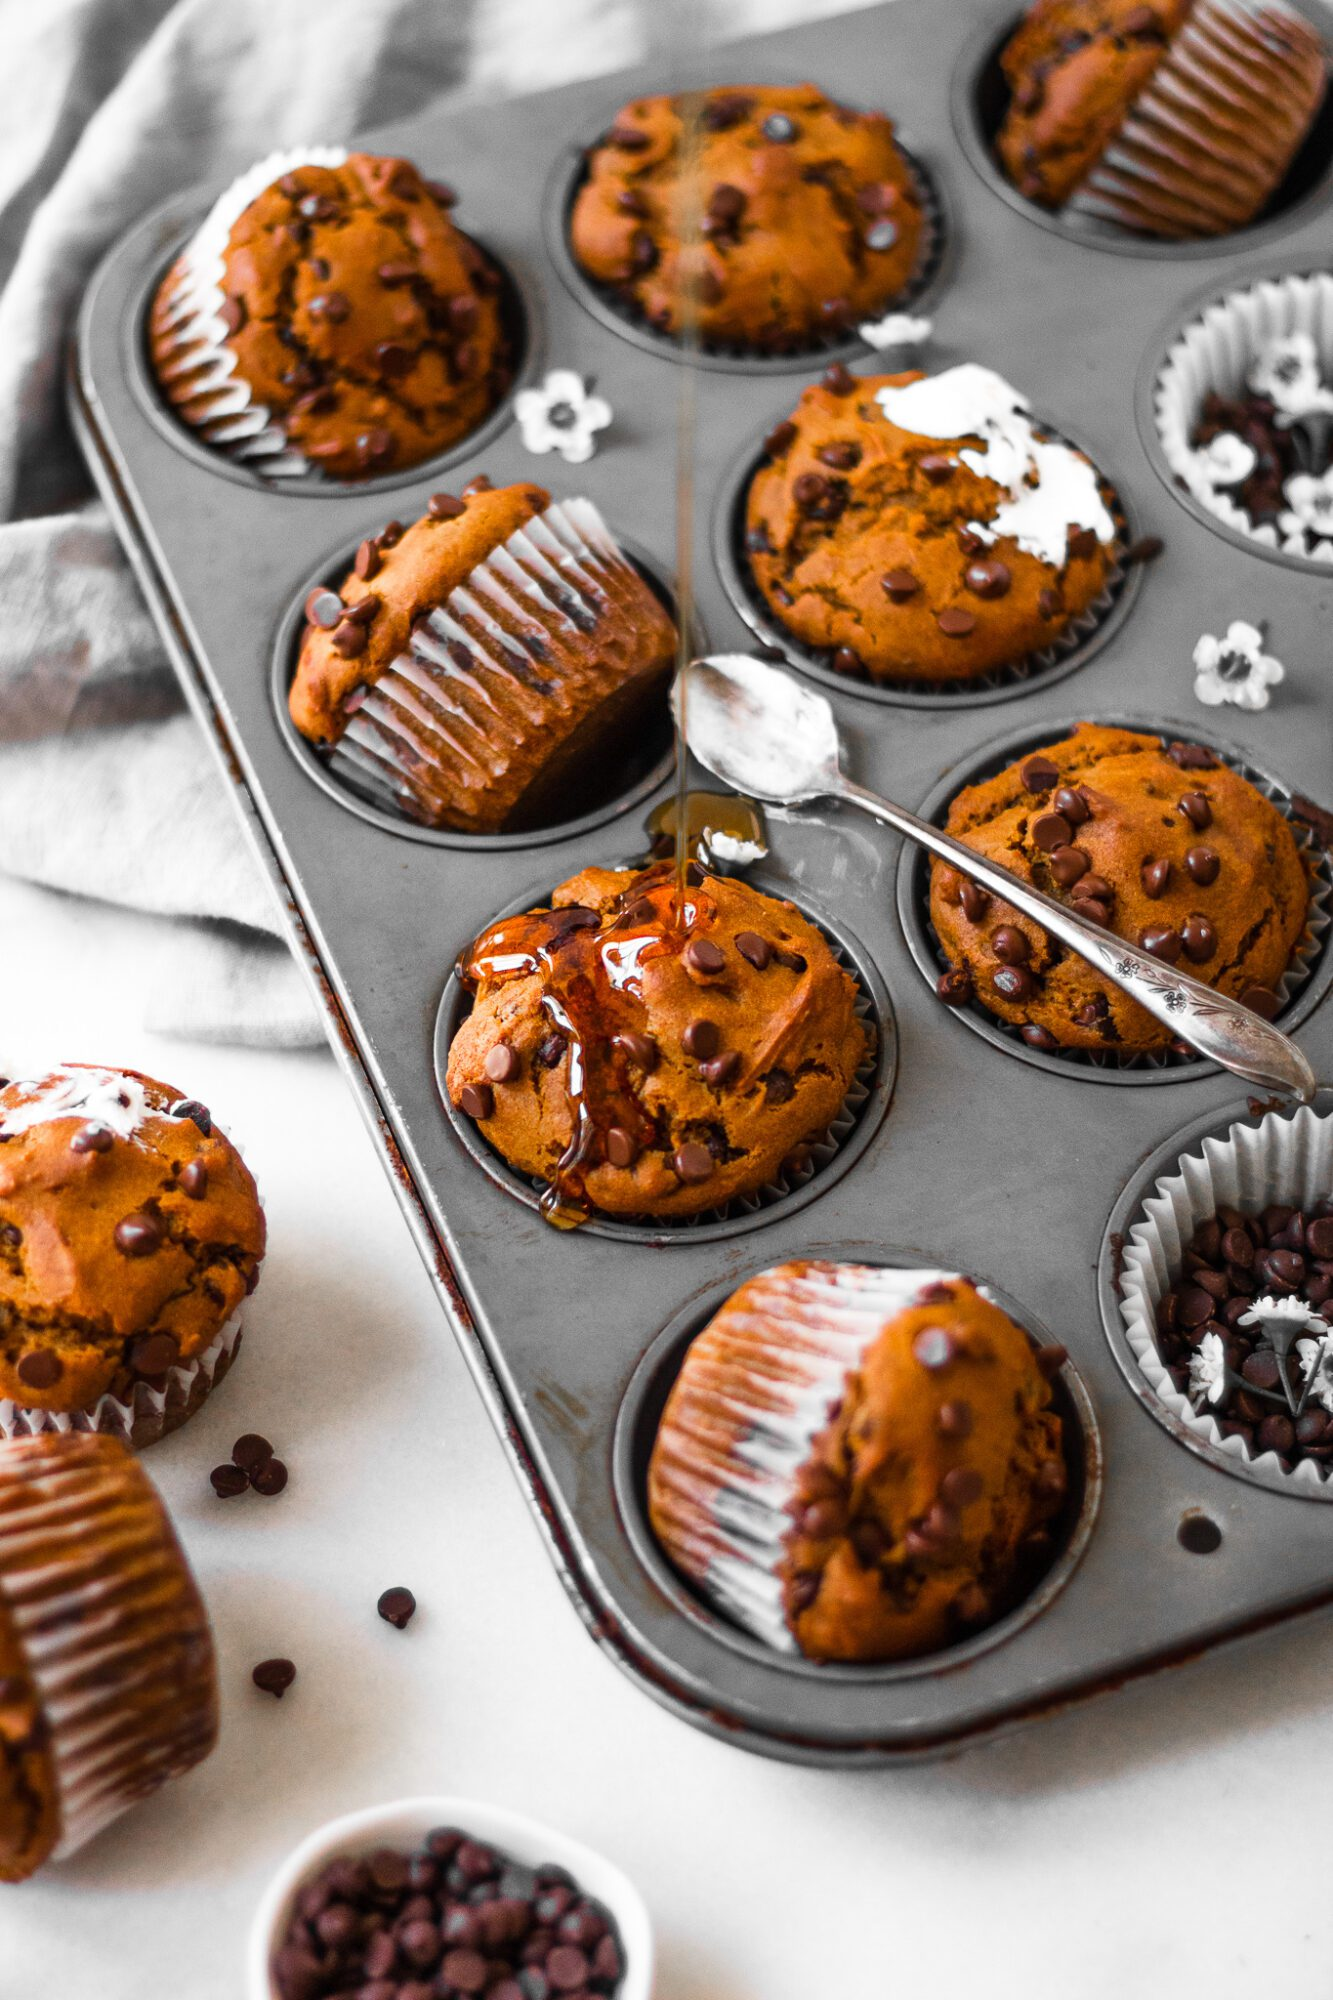 maple syrup drizzled onto vegan pumpkin muffins